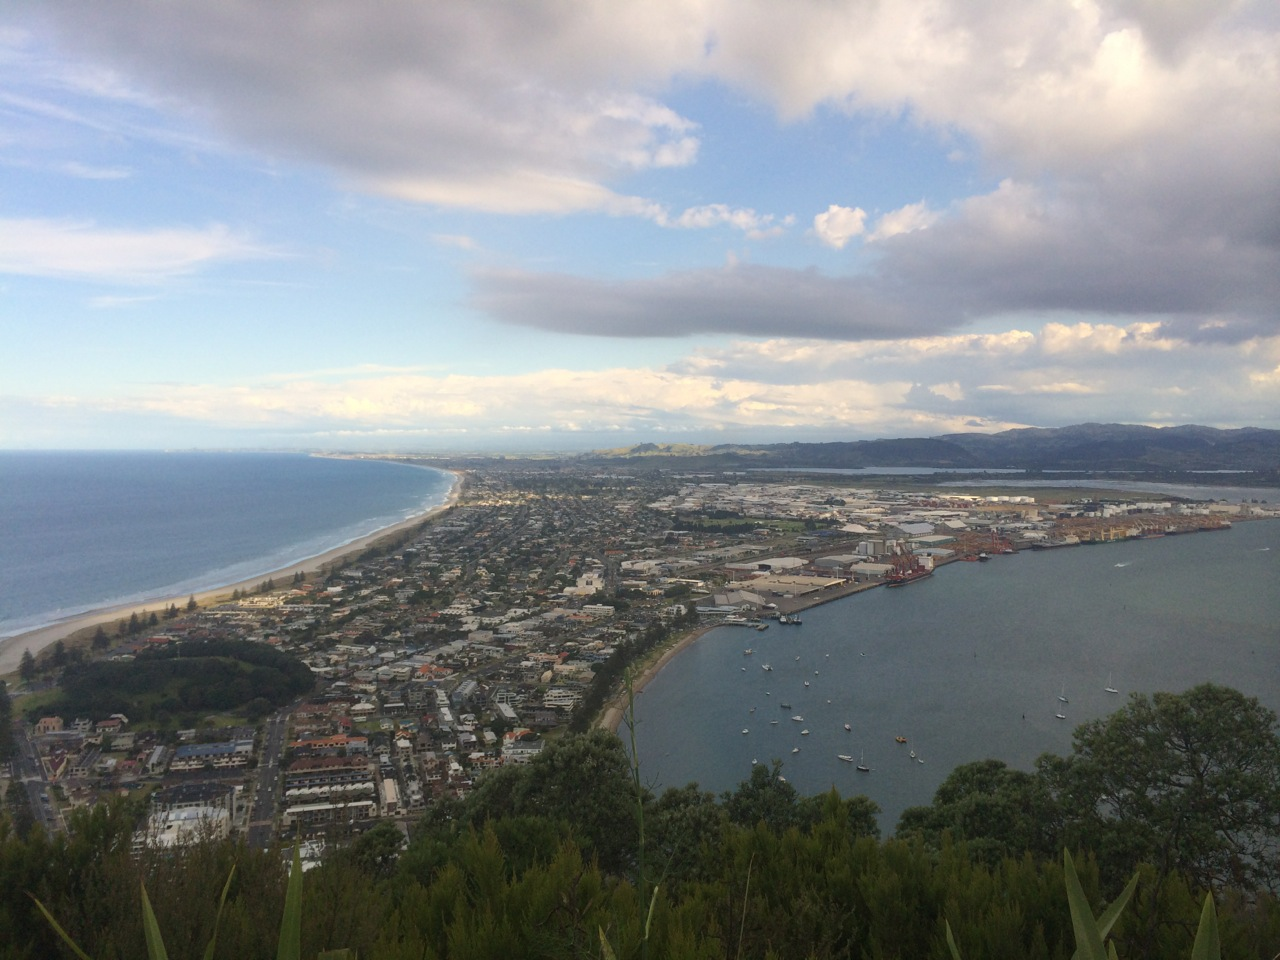 One of the highlights for me was doing an afternoon run through the town of Mount Maunganui as well as running around the actual Mount. I then met up with my Mum and we climbed to the top. The views from every single angle are breath taking. I had also done an 8km run that morning so by the evening I was pretty stuffed!